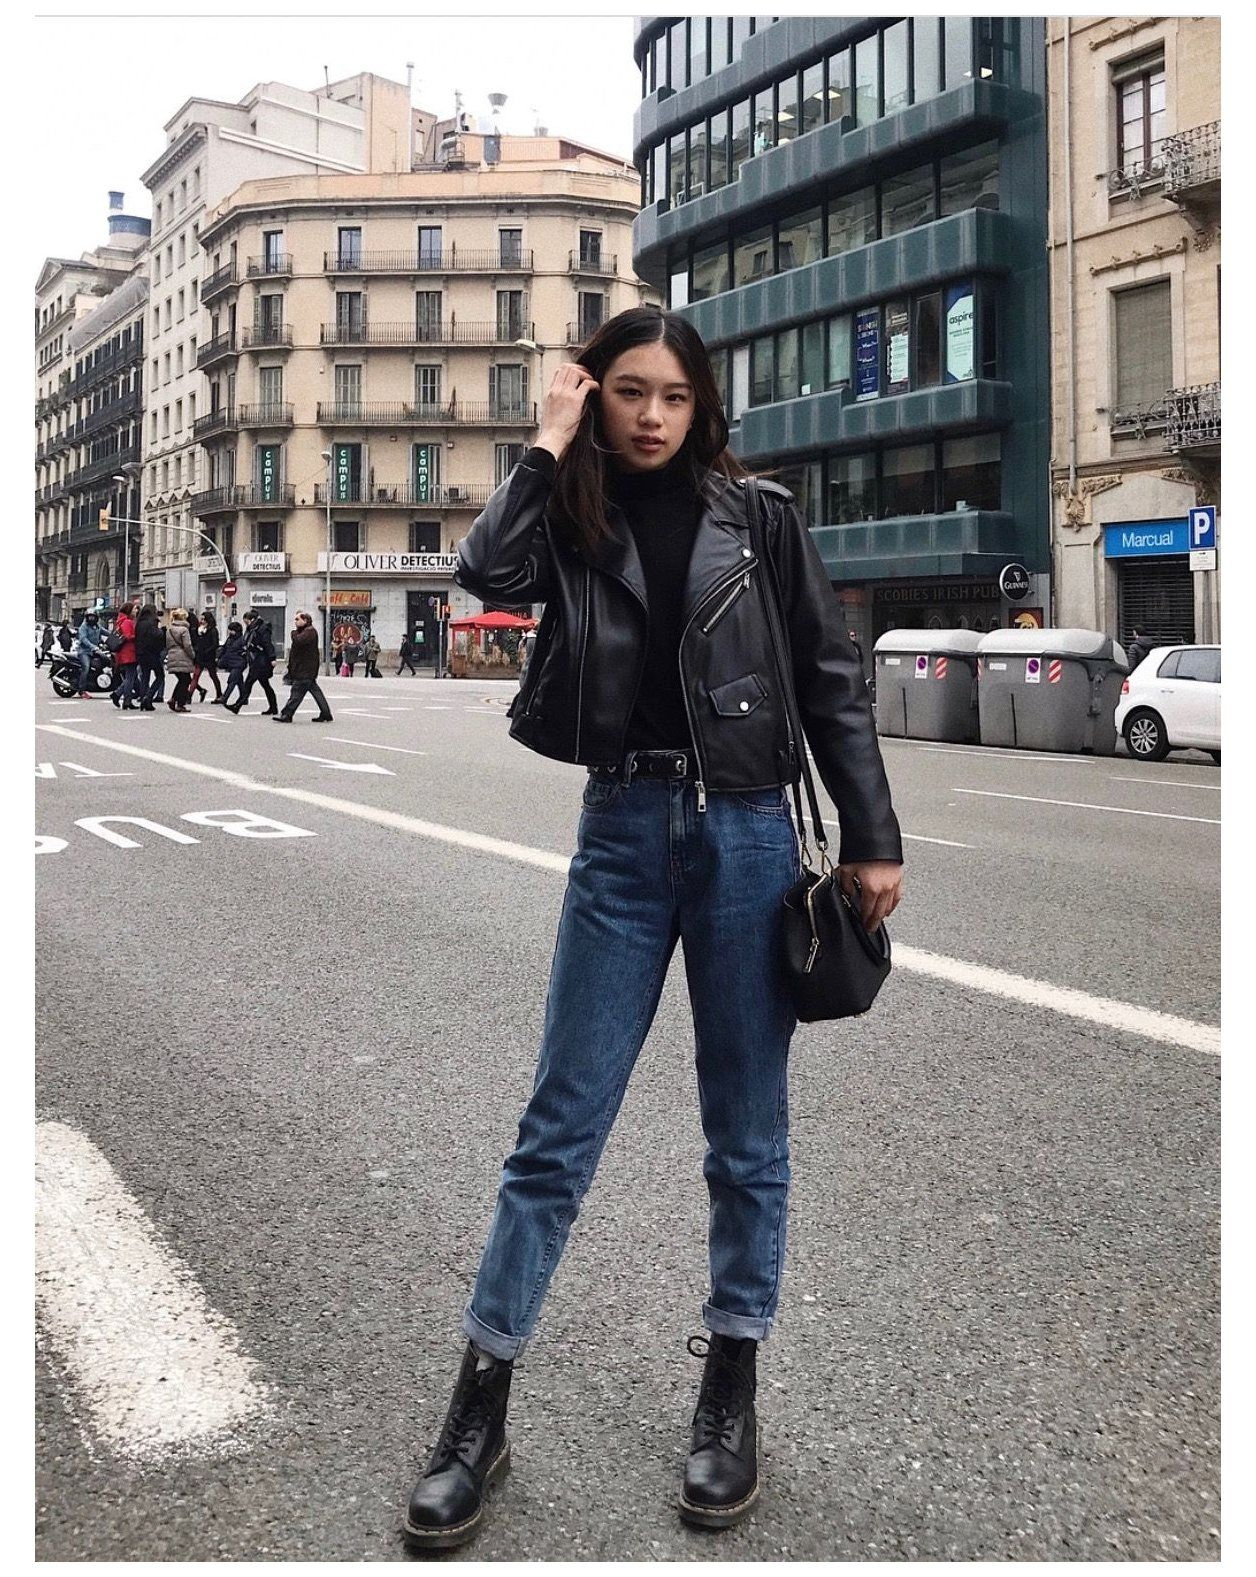 Dark Wash Mom Jeans Outfit Black Turtleneck Top Black Leather Jacket Rolled Dark Wash Mom J Trendy Outfits Inspiration Classy Trendy Outfits Fashion [ 1577 x 1256 Pixel ]